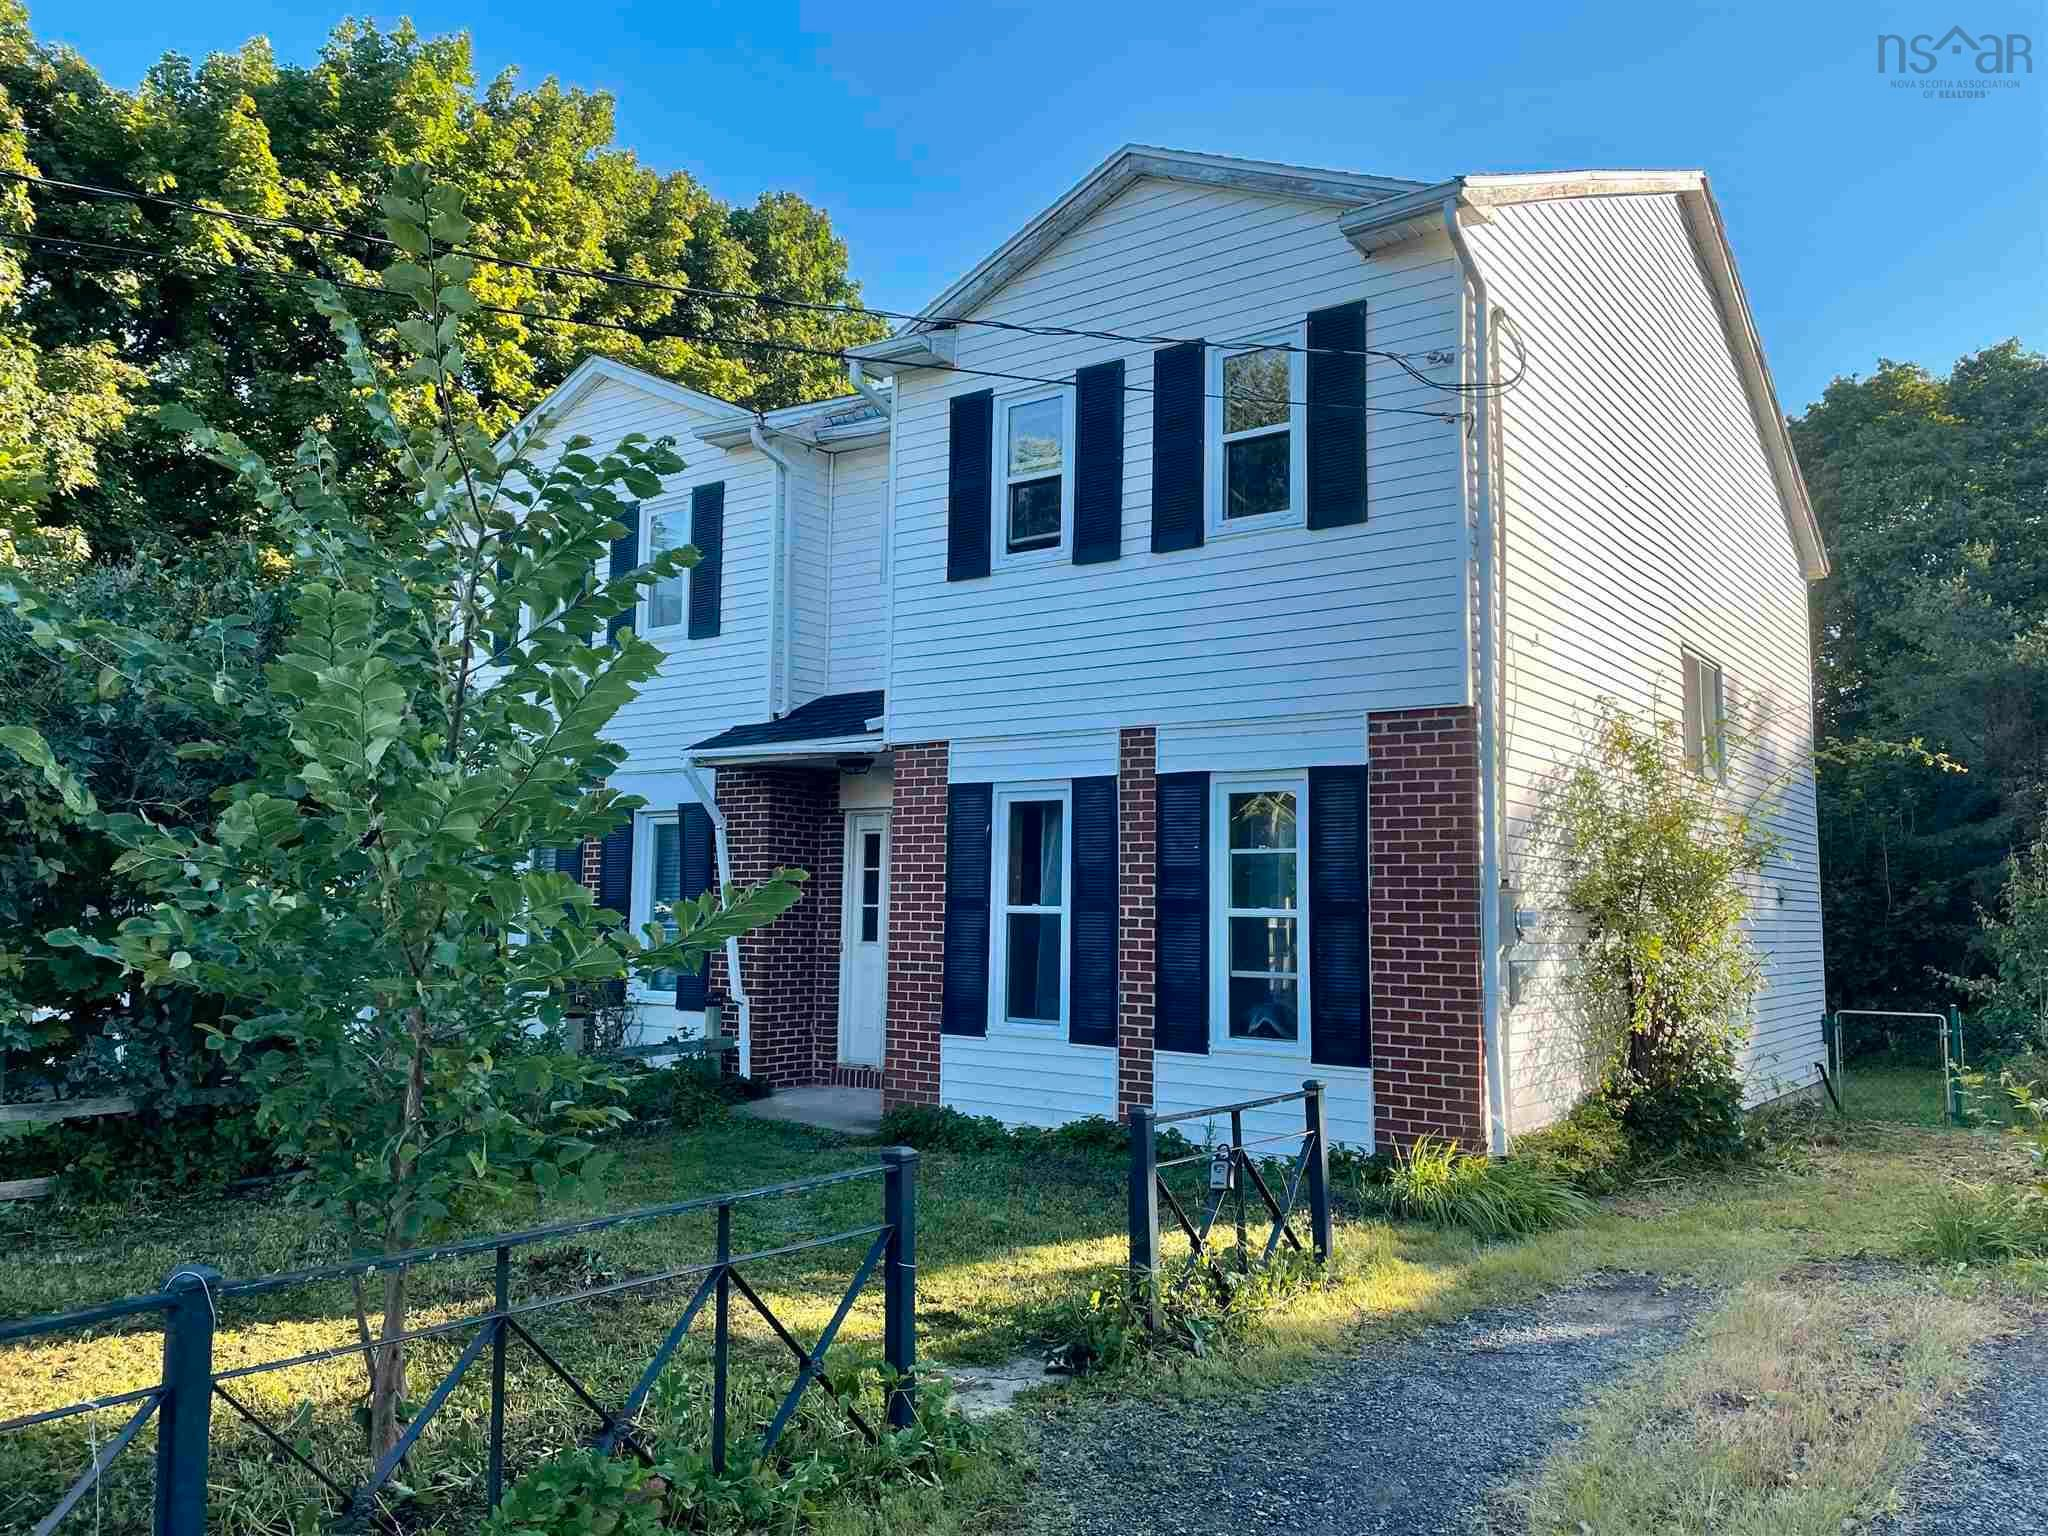 Main Photo: 15 Cherry Lane in Wolfville: 404-Kings County Residential for sale (Annapolis Valley)  : MLS®# 202122913